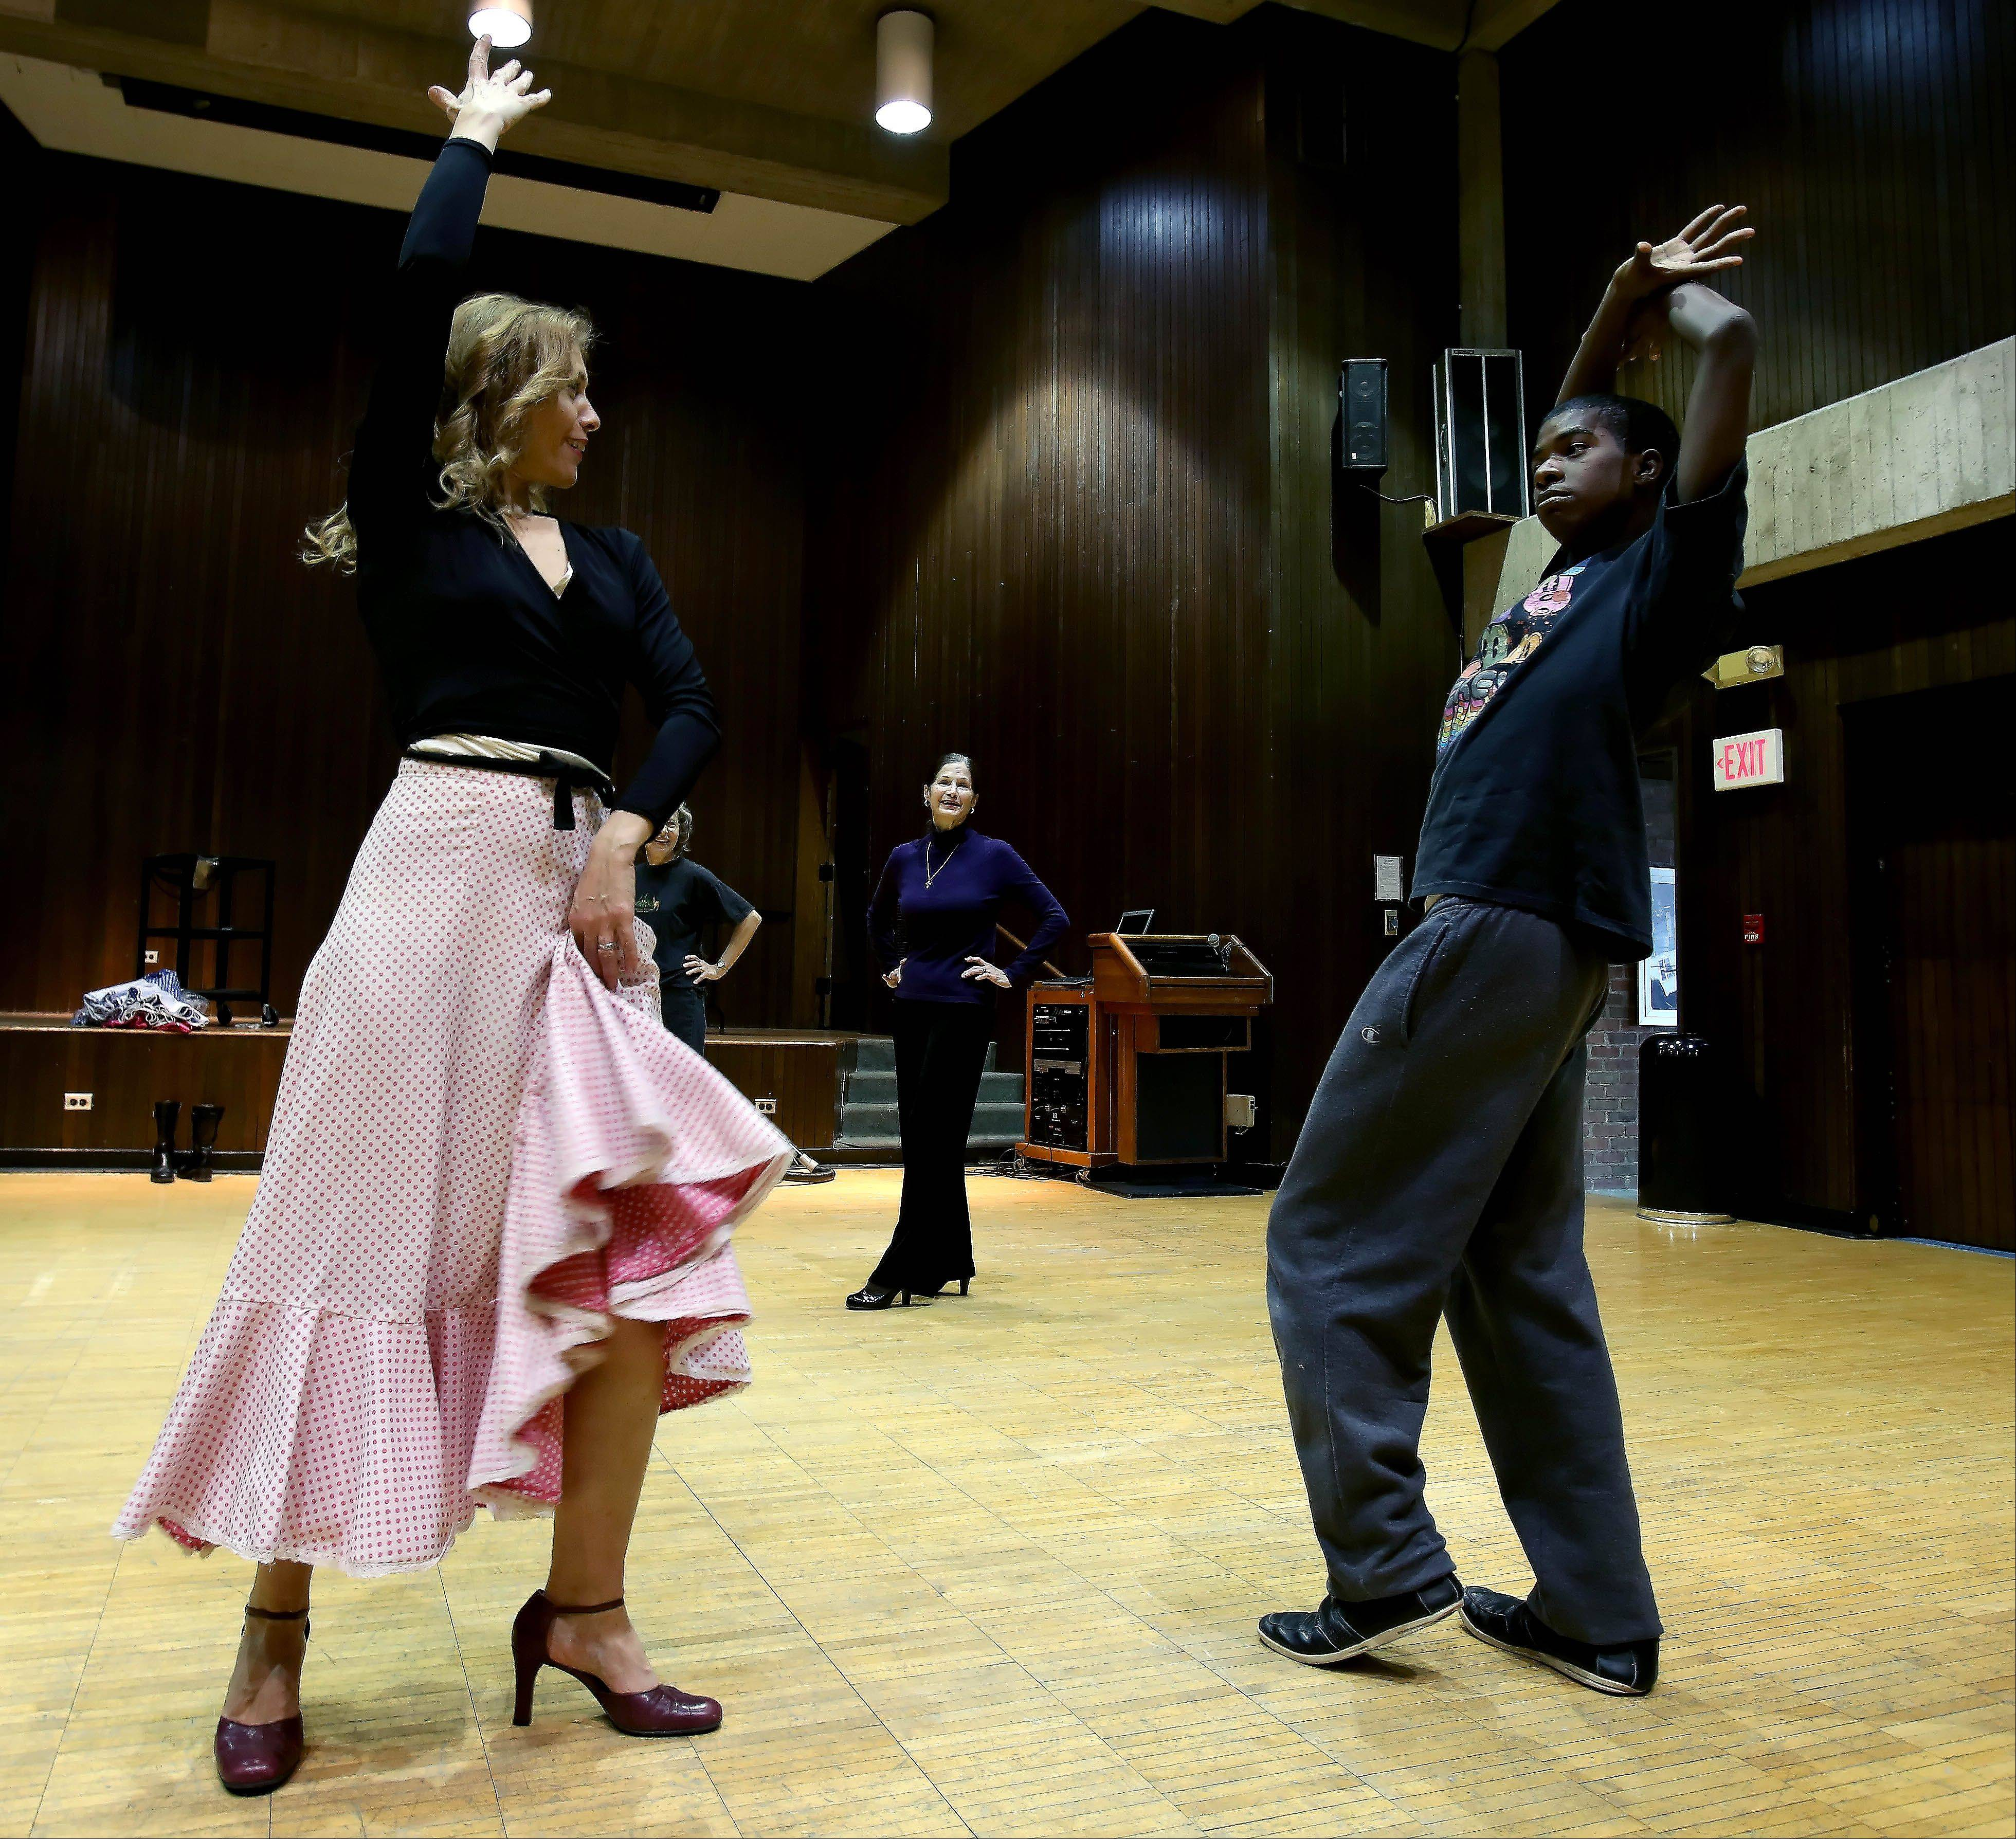 Jelena S�nchez teaches sophmore Aronzo Traylor an ending for a flamenco dance as Rita Dudley of Glendale Heights looks on at North Central College.